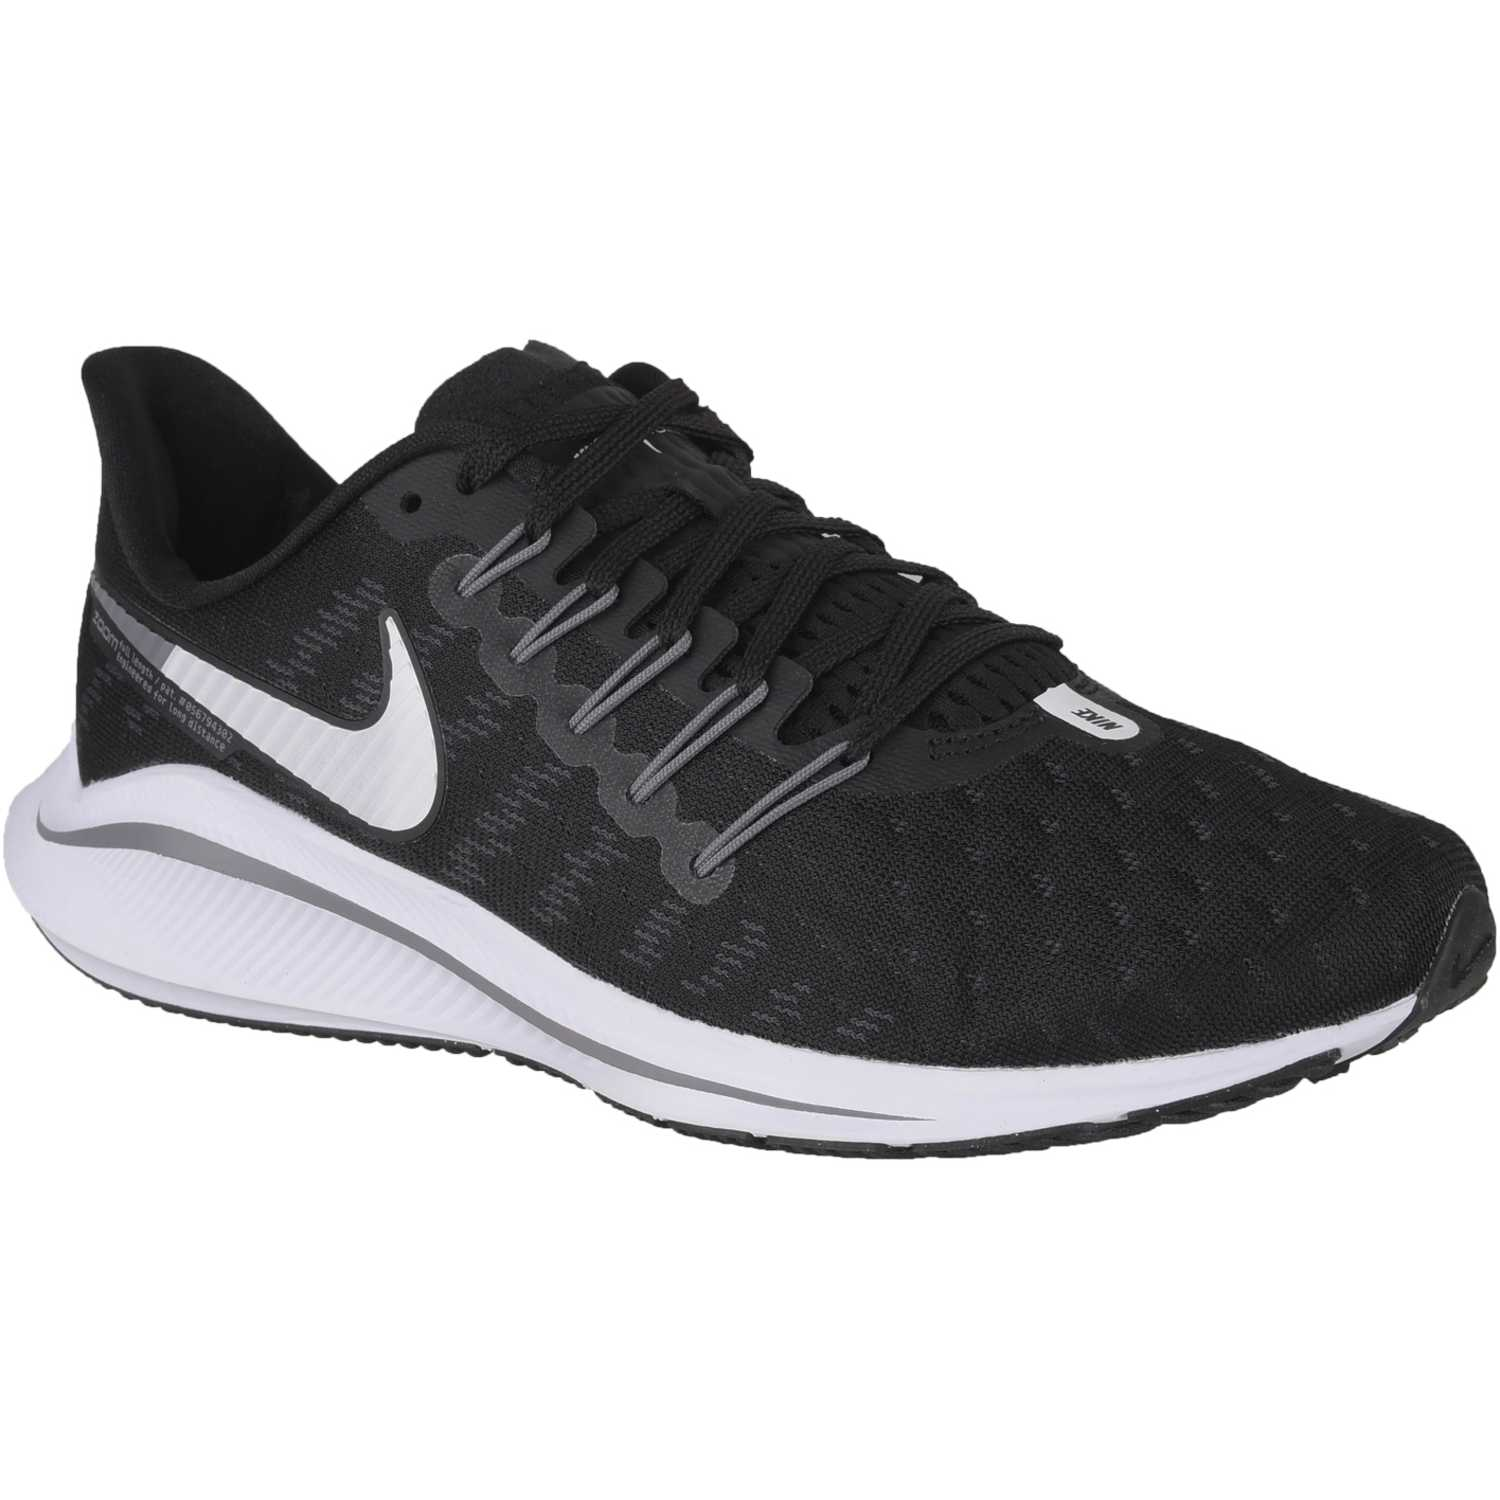 the best attitude 5f91a 364df Zapatilla de Mujer Nike Negro   blanco wmns nike air zoom vomero 14